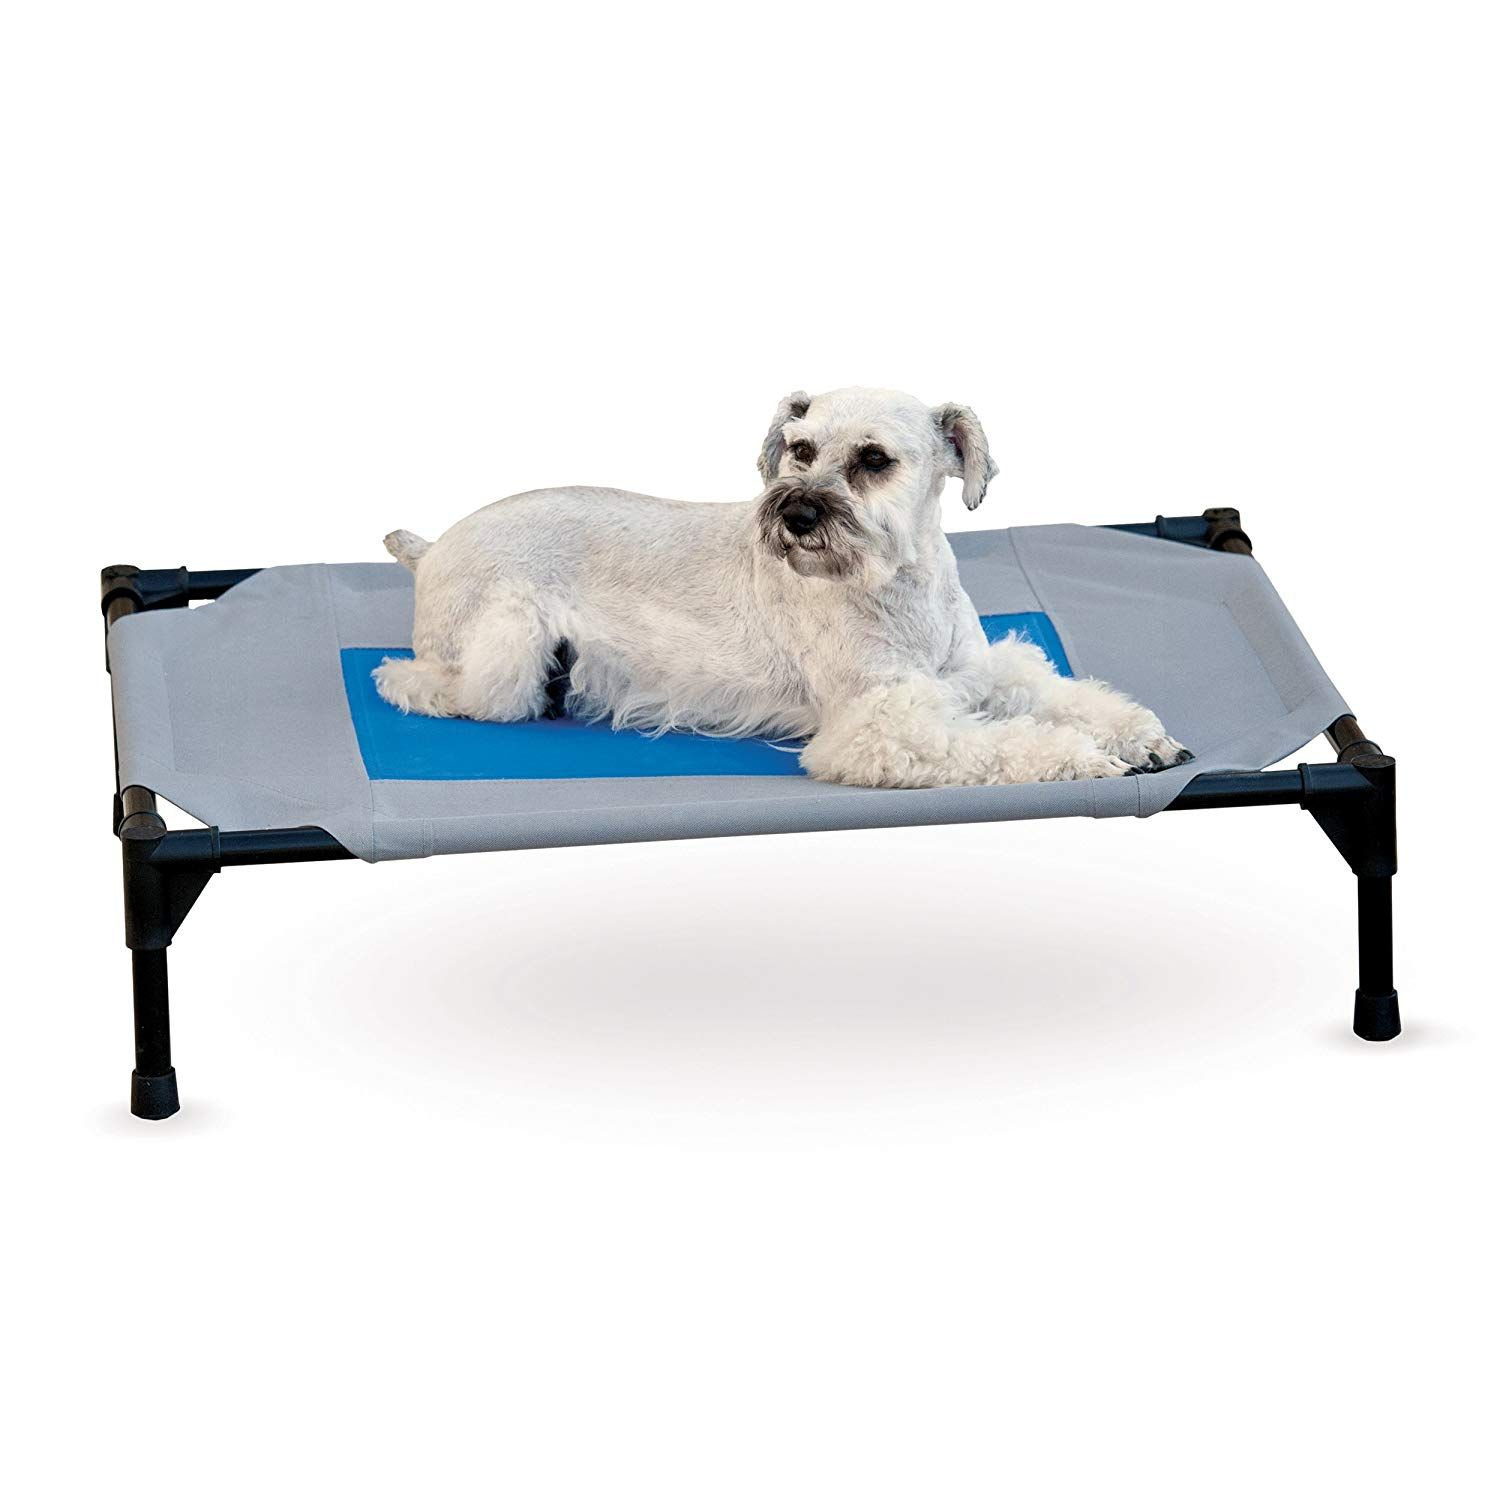 Veehoo Cooling Elevated Dog Bed Portable Raised Pet Cot Bed